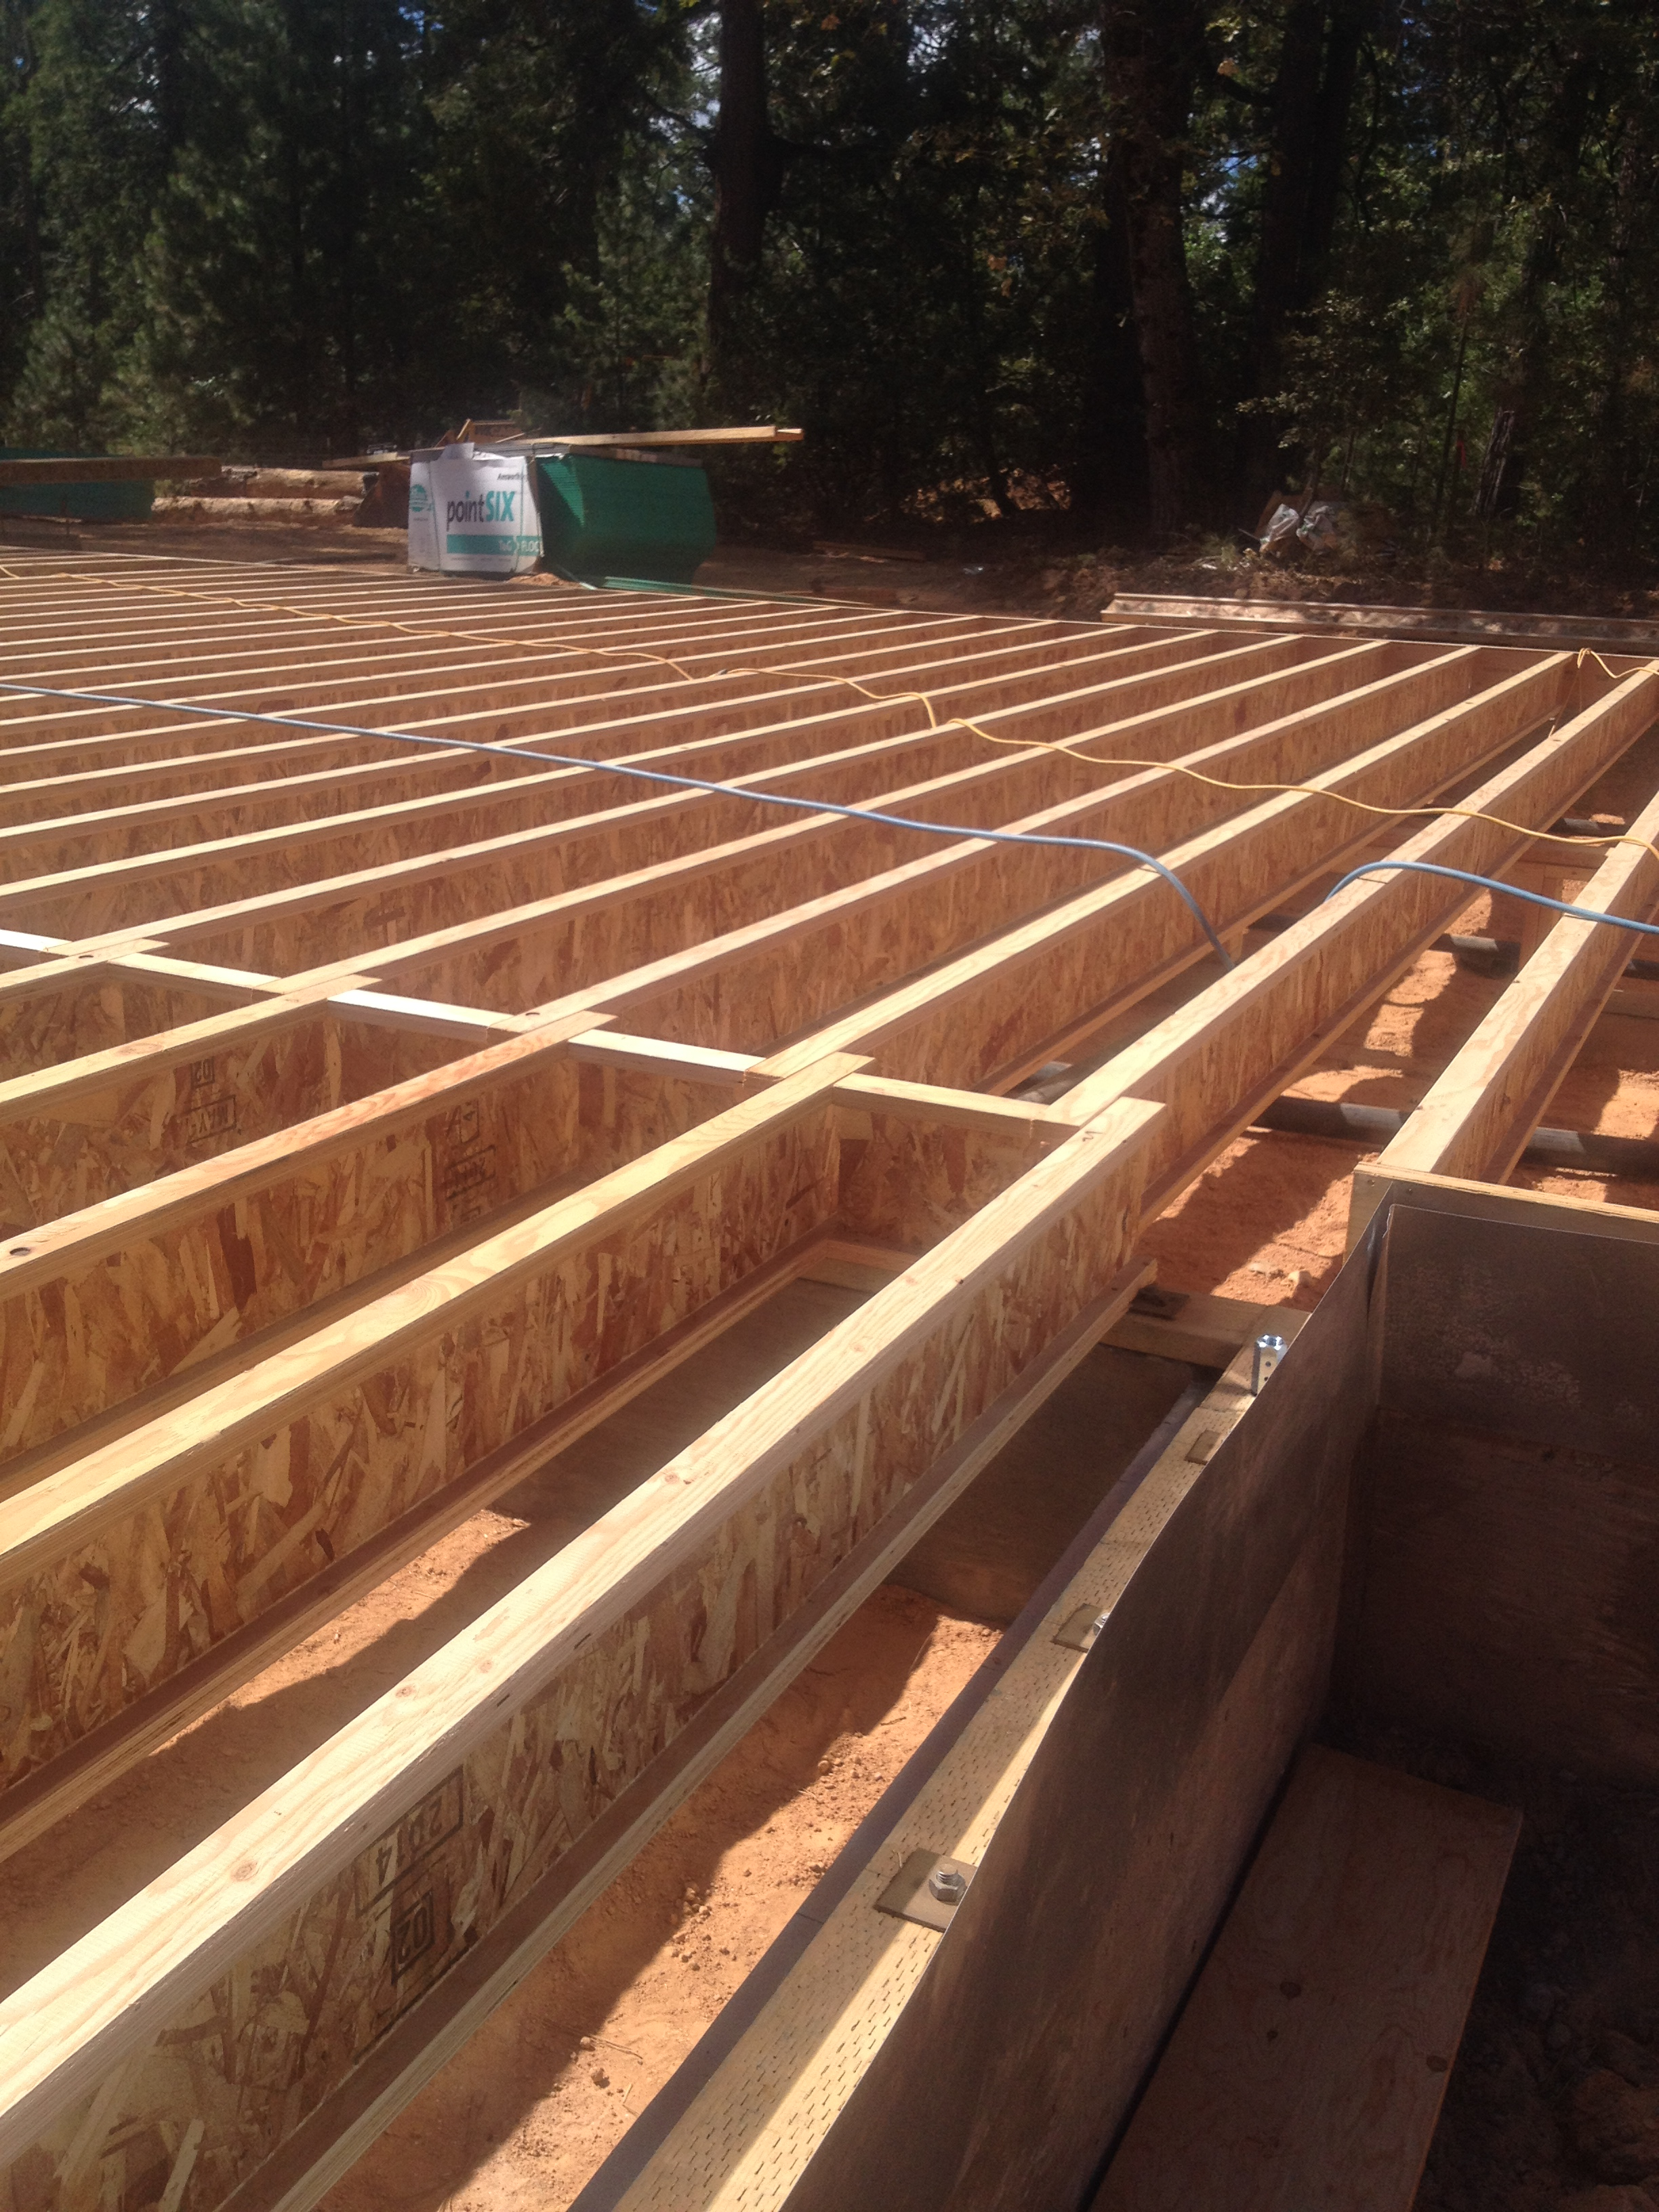 Gold country kit homes the mendocino build part 2 floor for Floor joist trusses